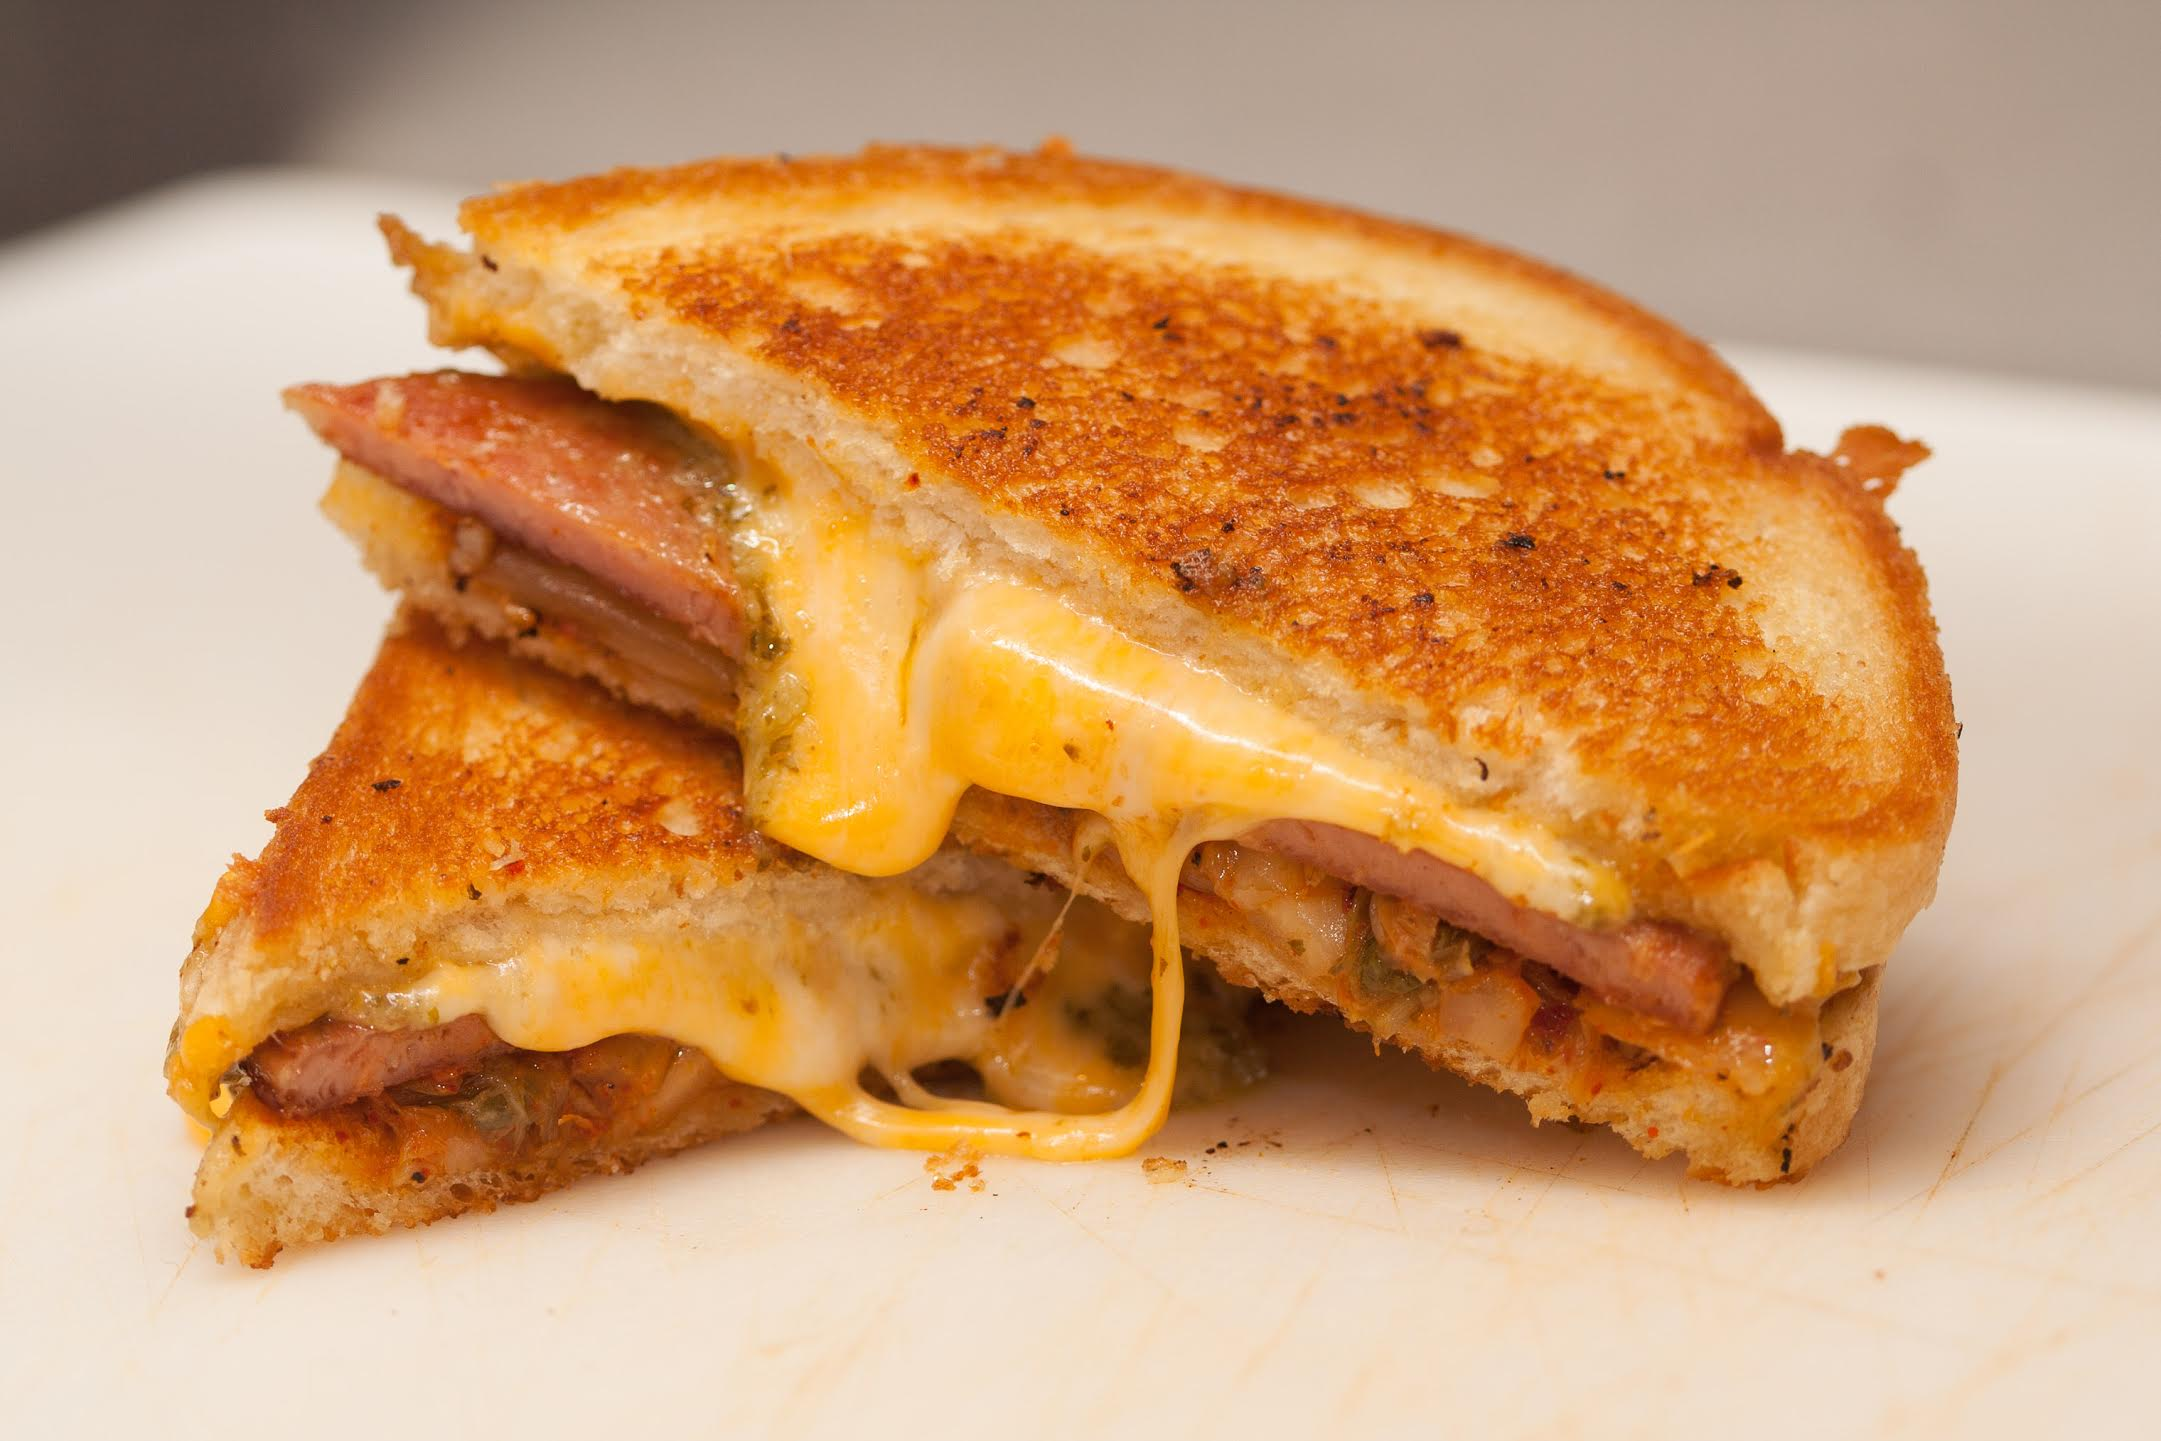 Kogi Truck's Kimchi Grilled Cheese | available at OOZEFEST, Marketplace